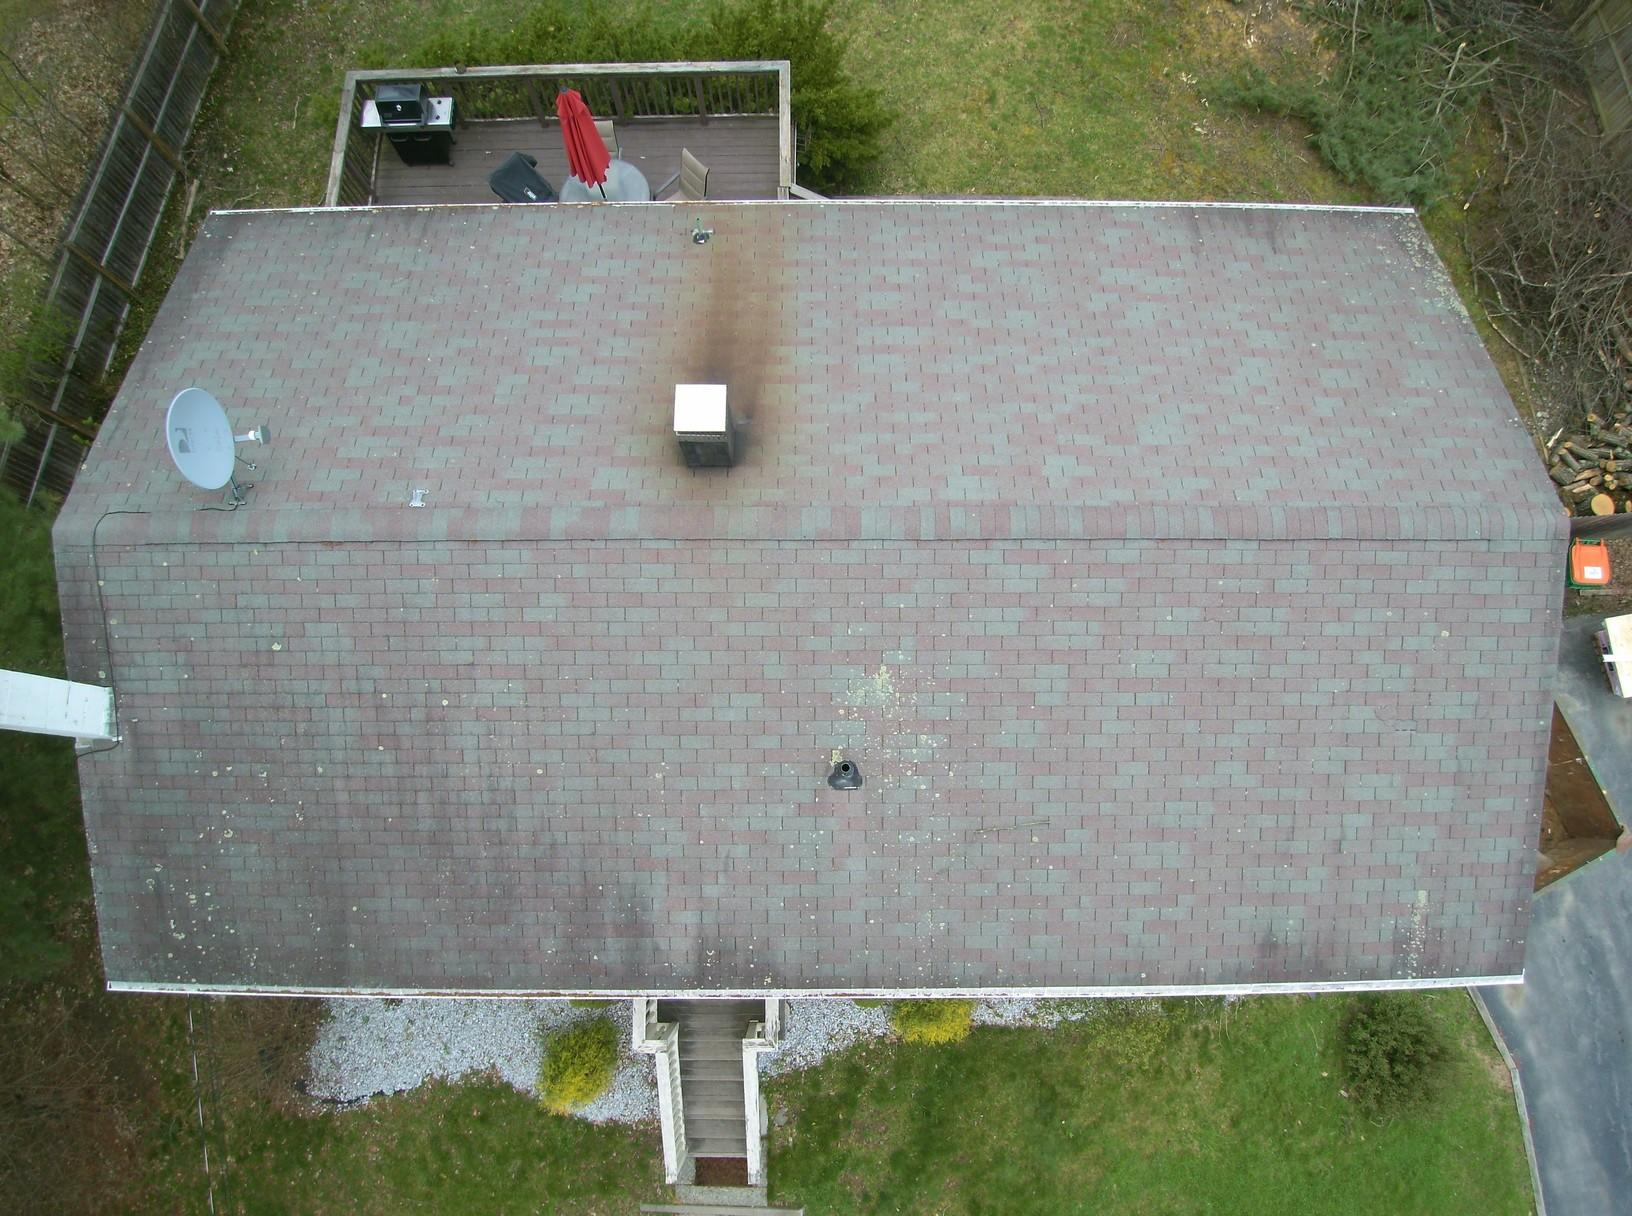 Onyx Black Roof Replacement in Wappingers Falls, NY - Before Photo